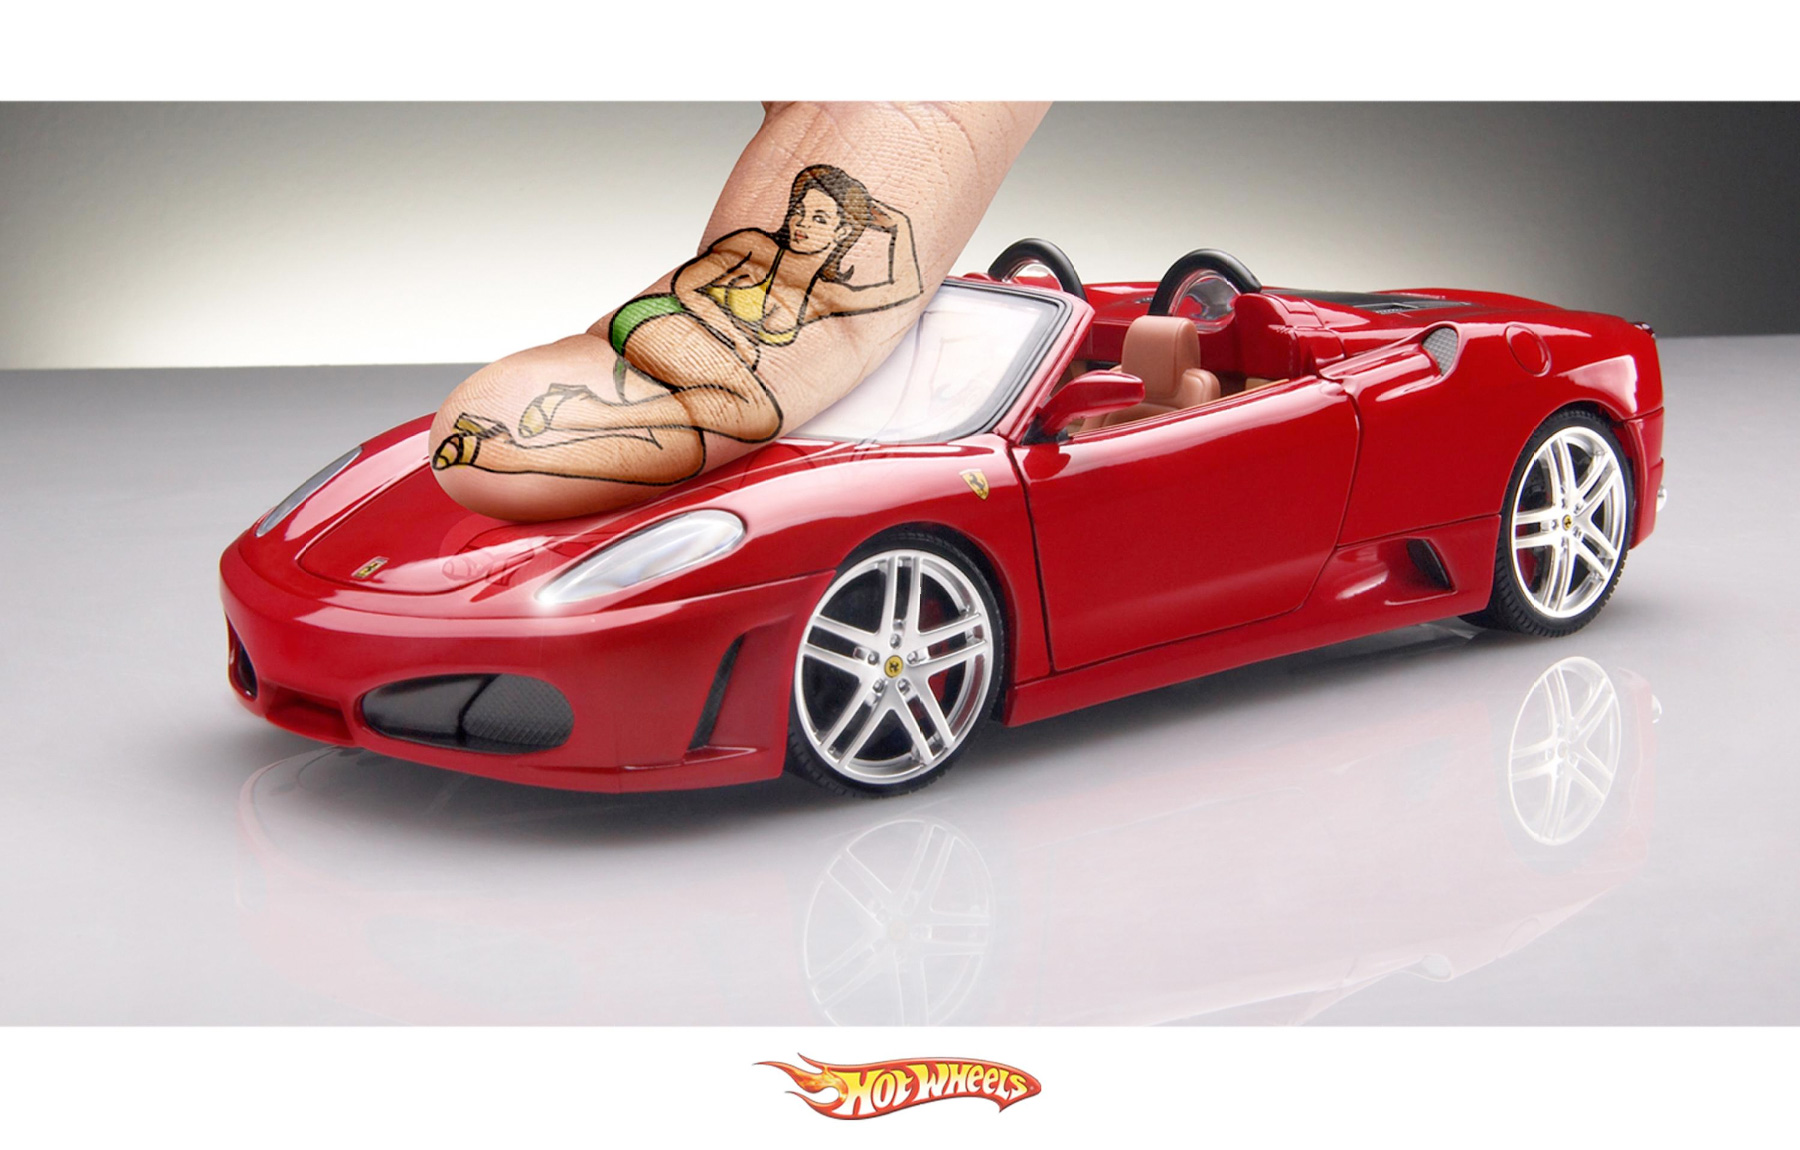 Hot Wheels Model Cars